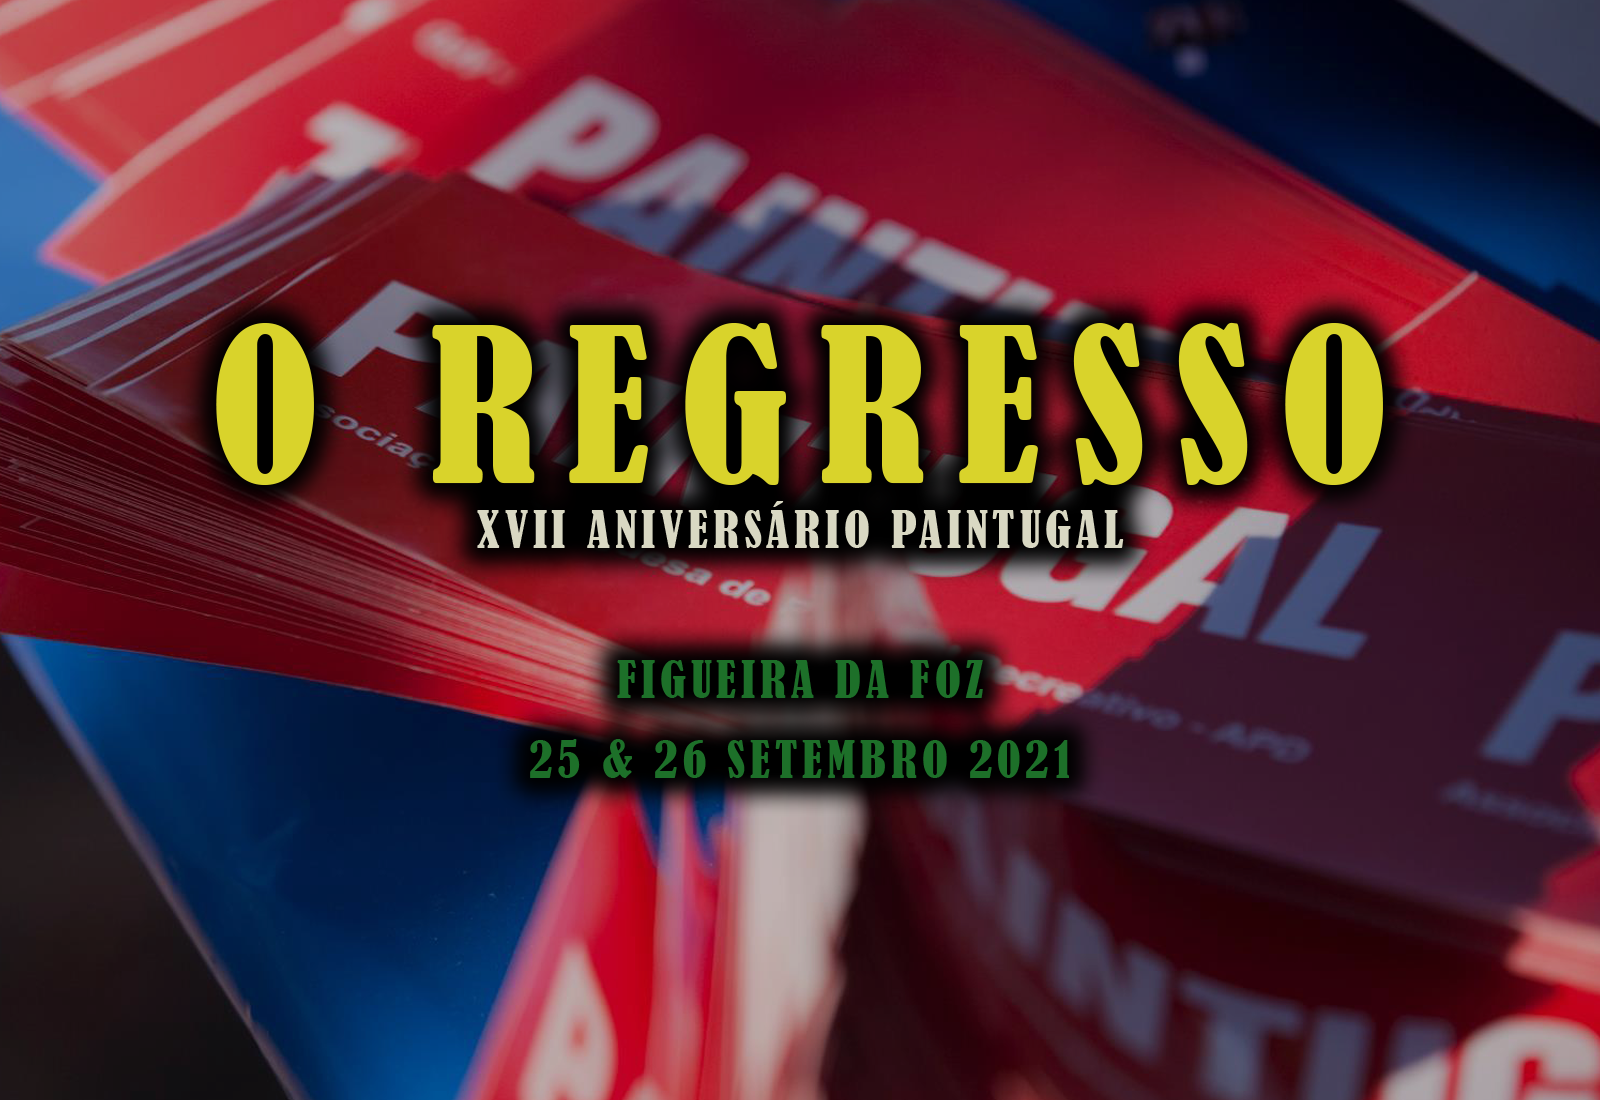 Paintugal - O Regresso